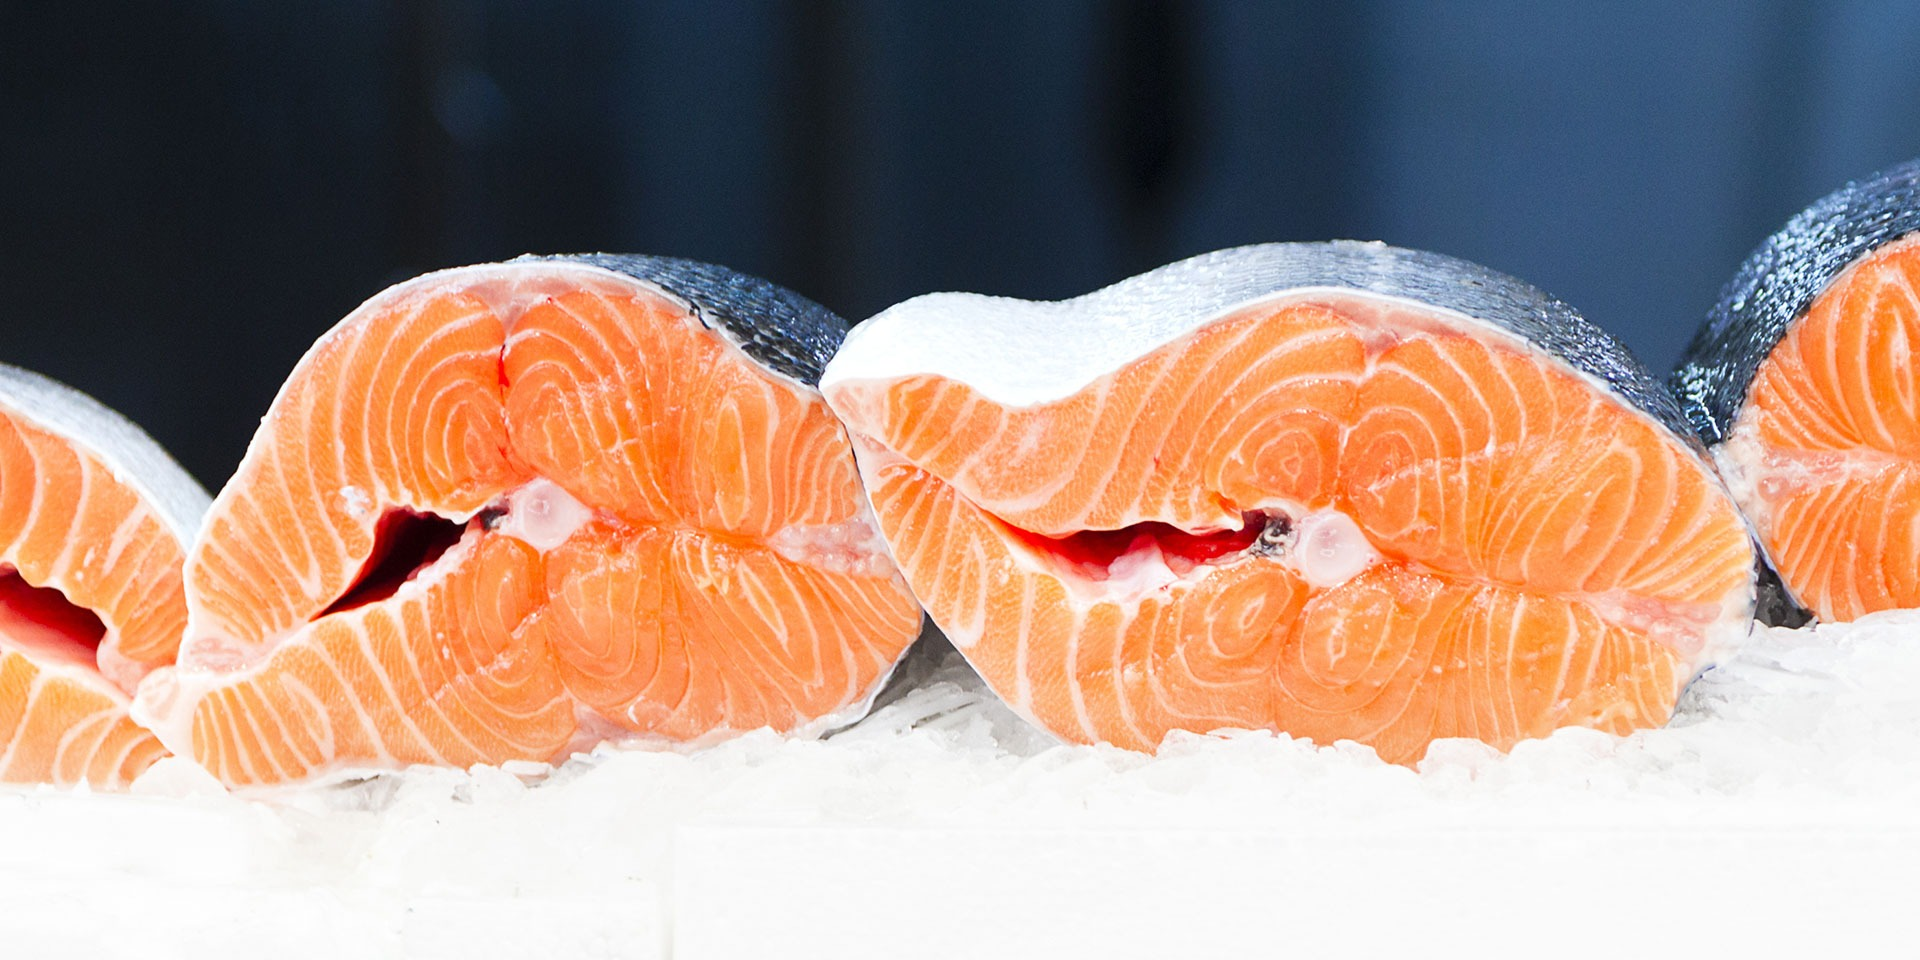 learn more about farmed seafood like salmon